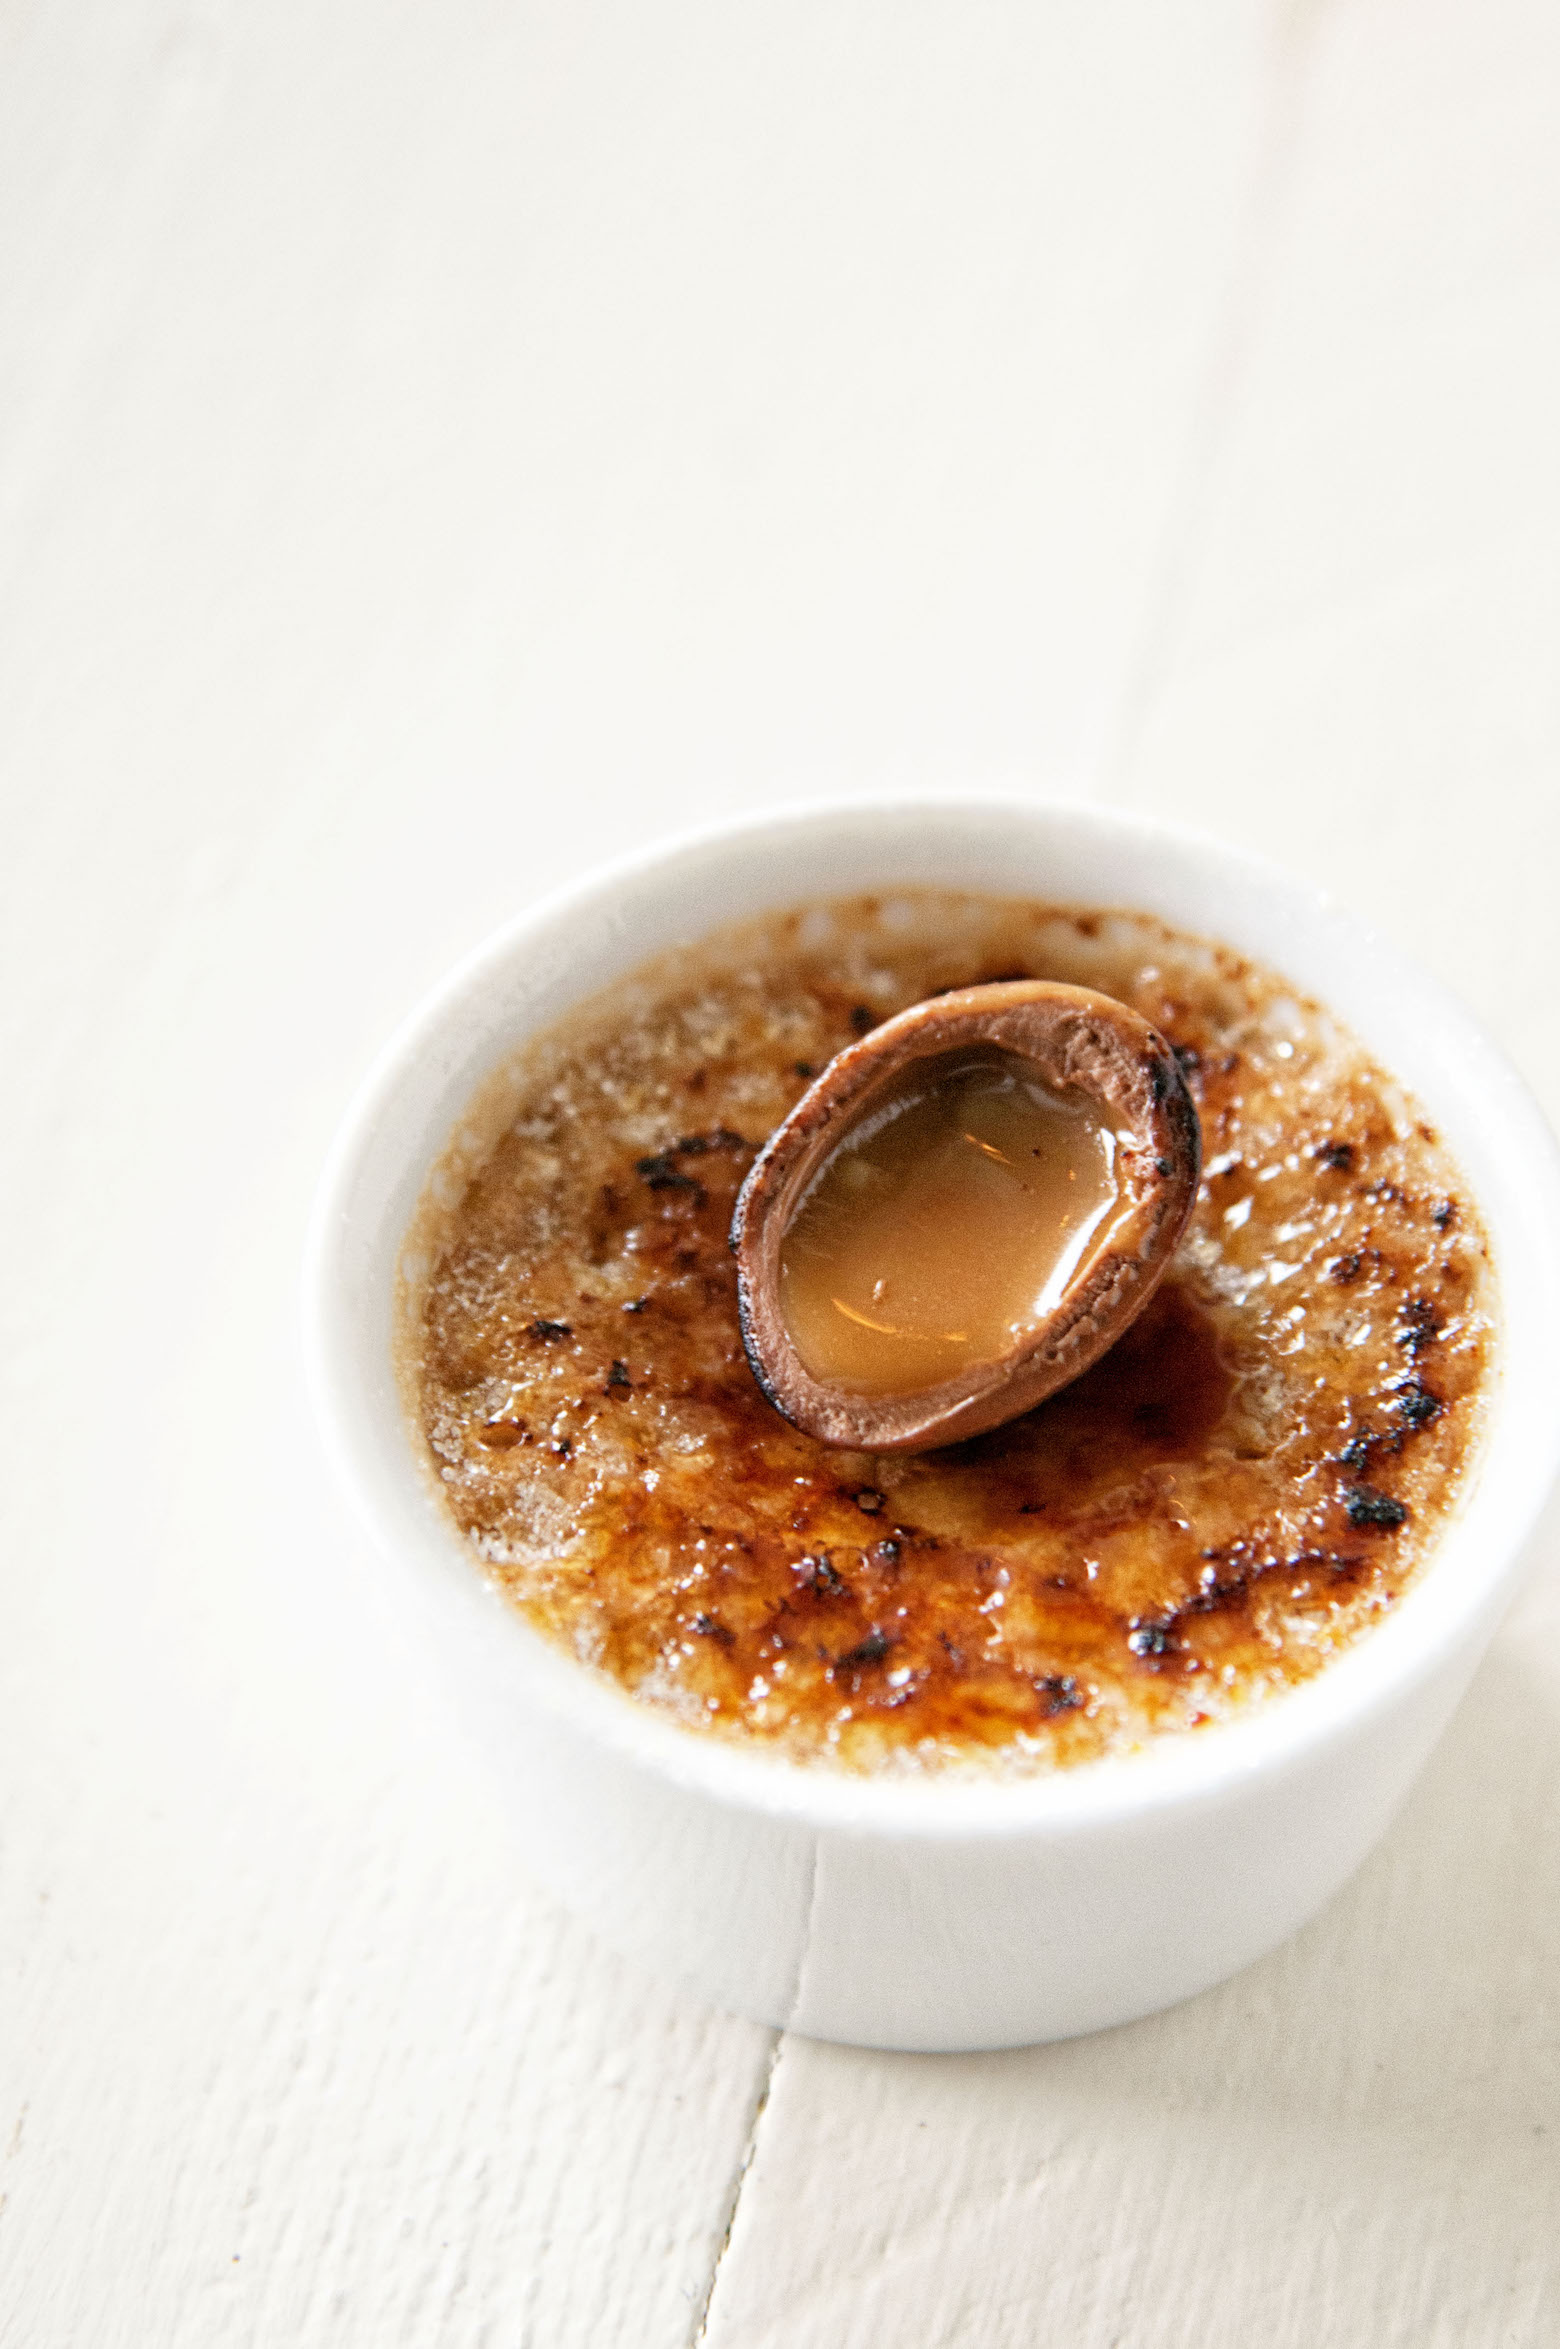 Creme brulee with caramelized top and a mini cadbury egg sliced open on top with the carmel spilling out.